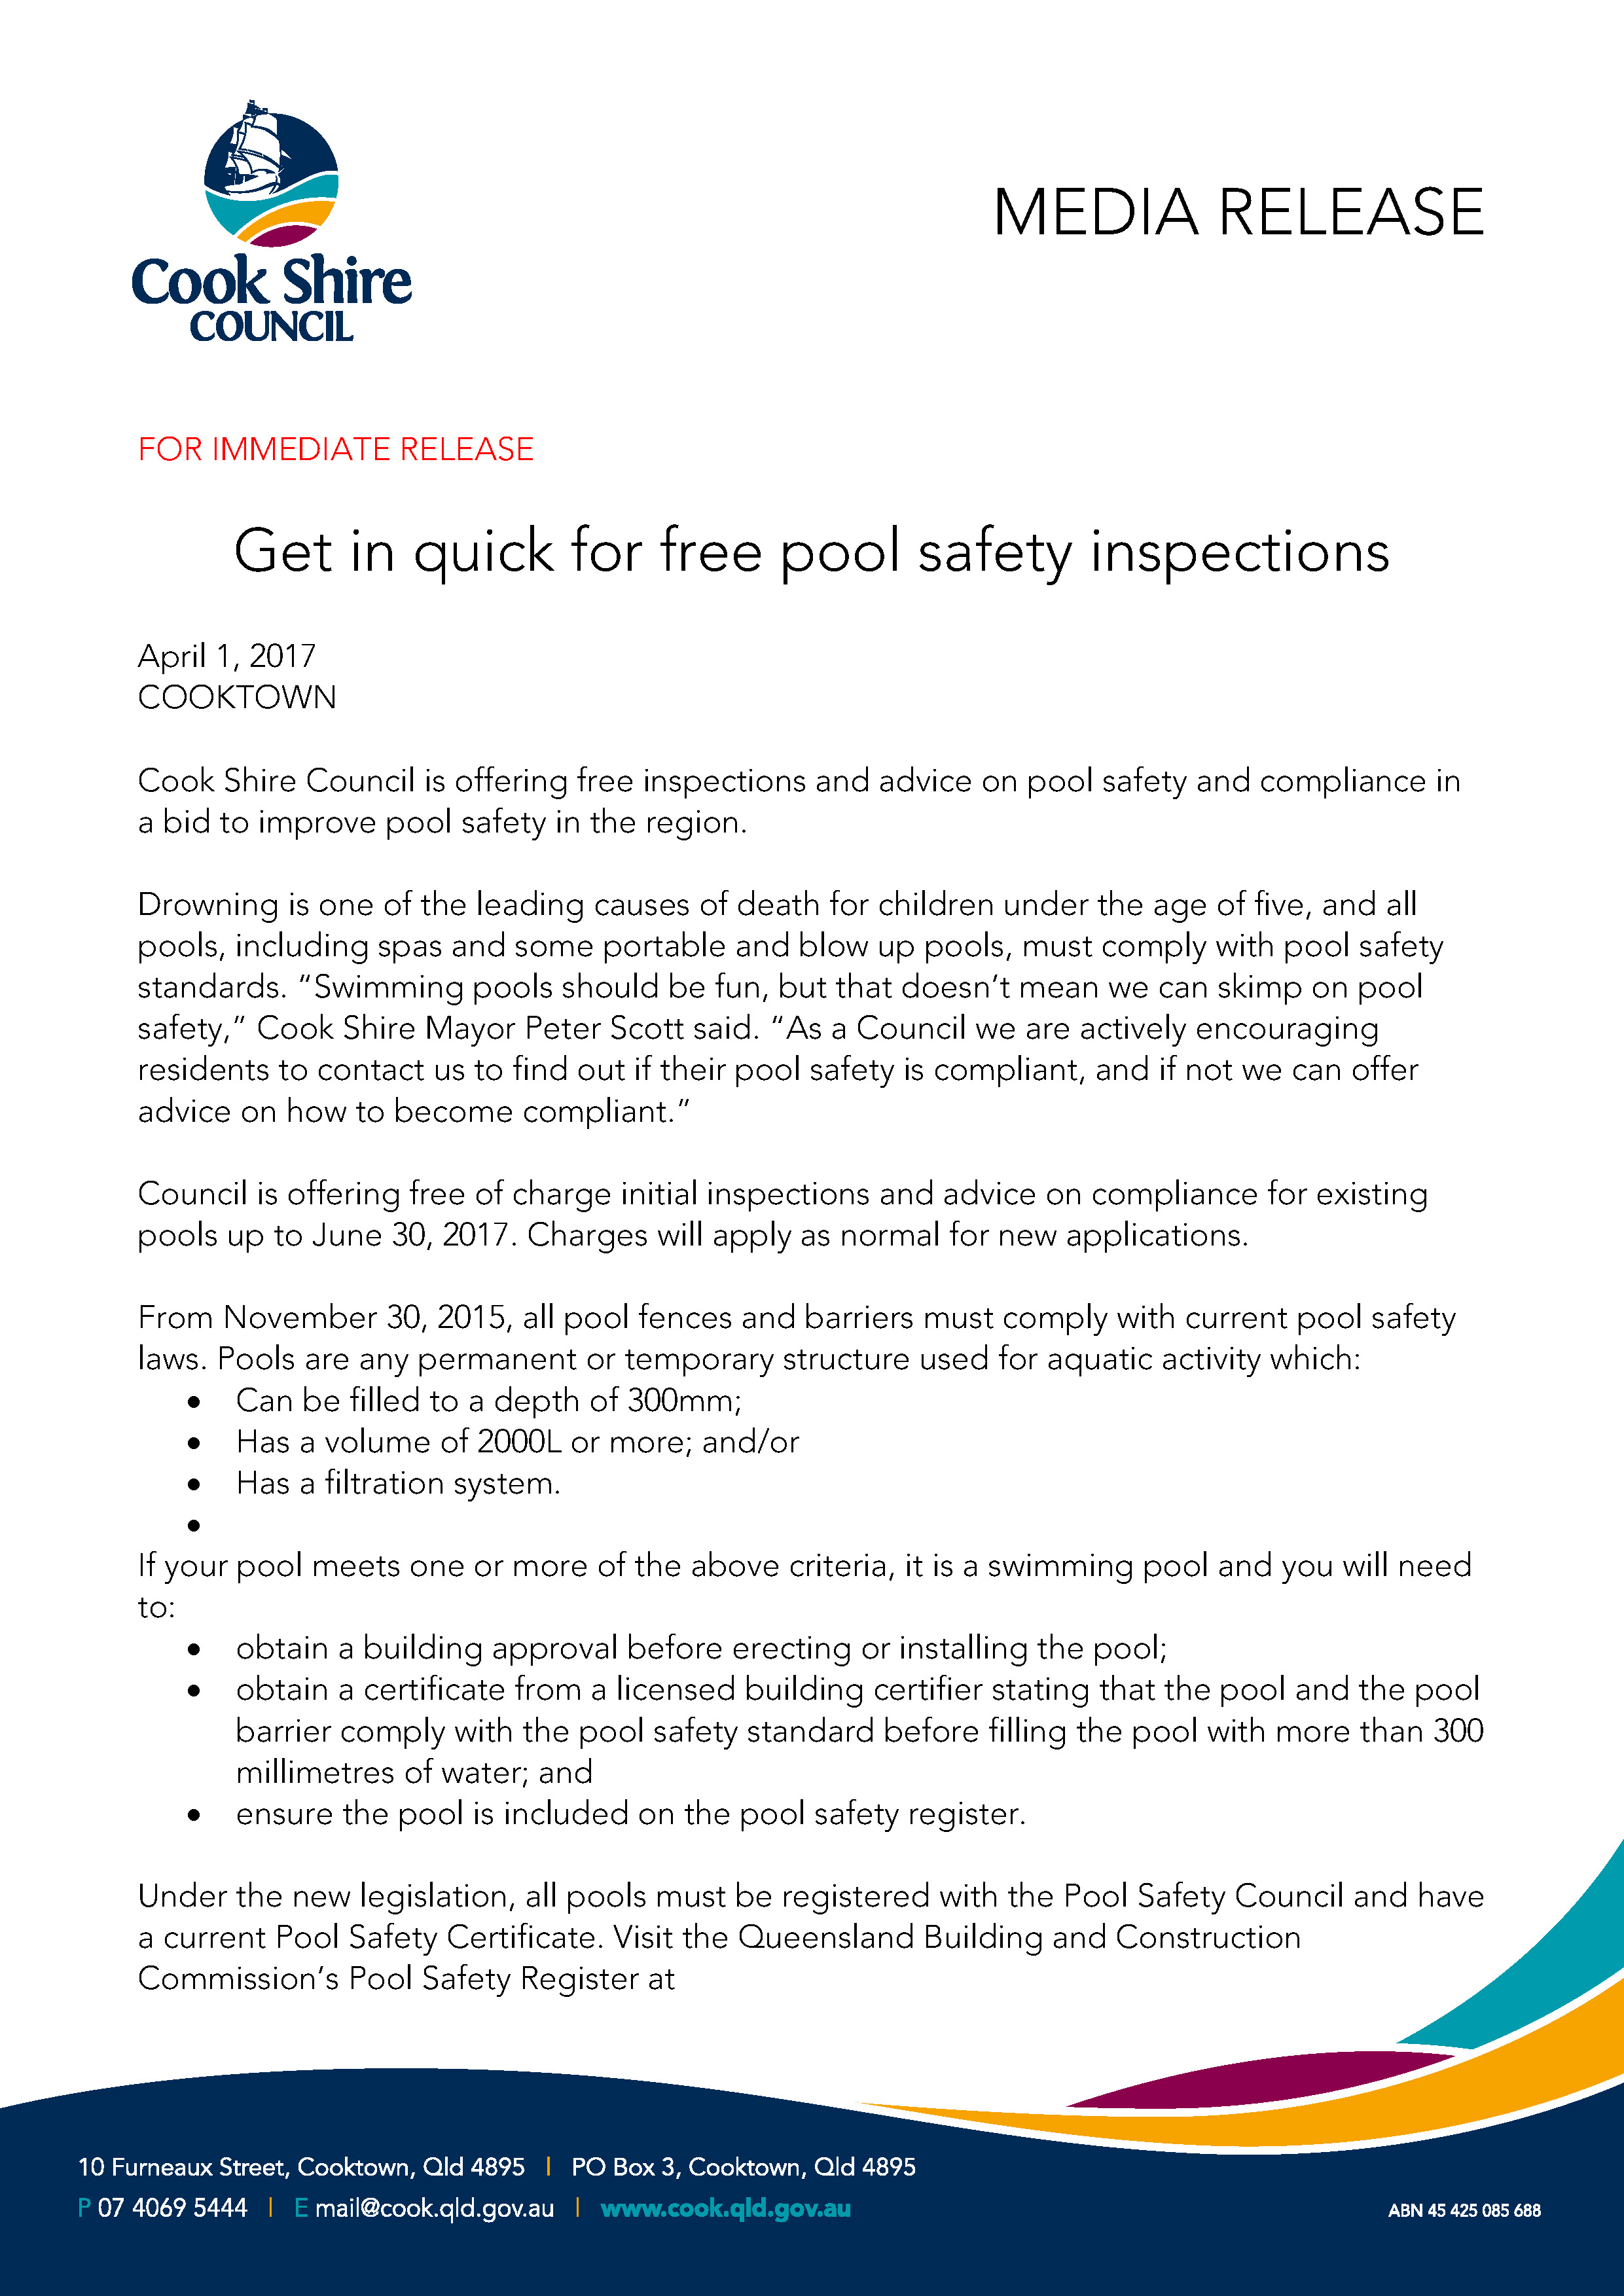 Get in quick for free pool safety inspections